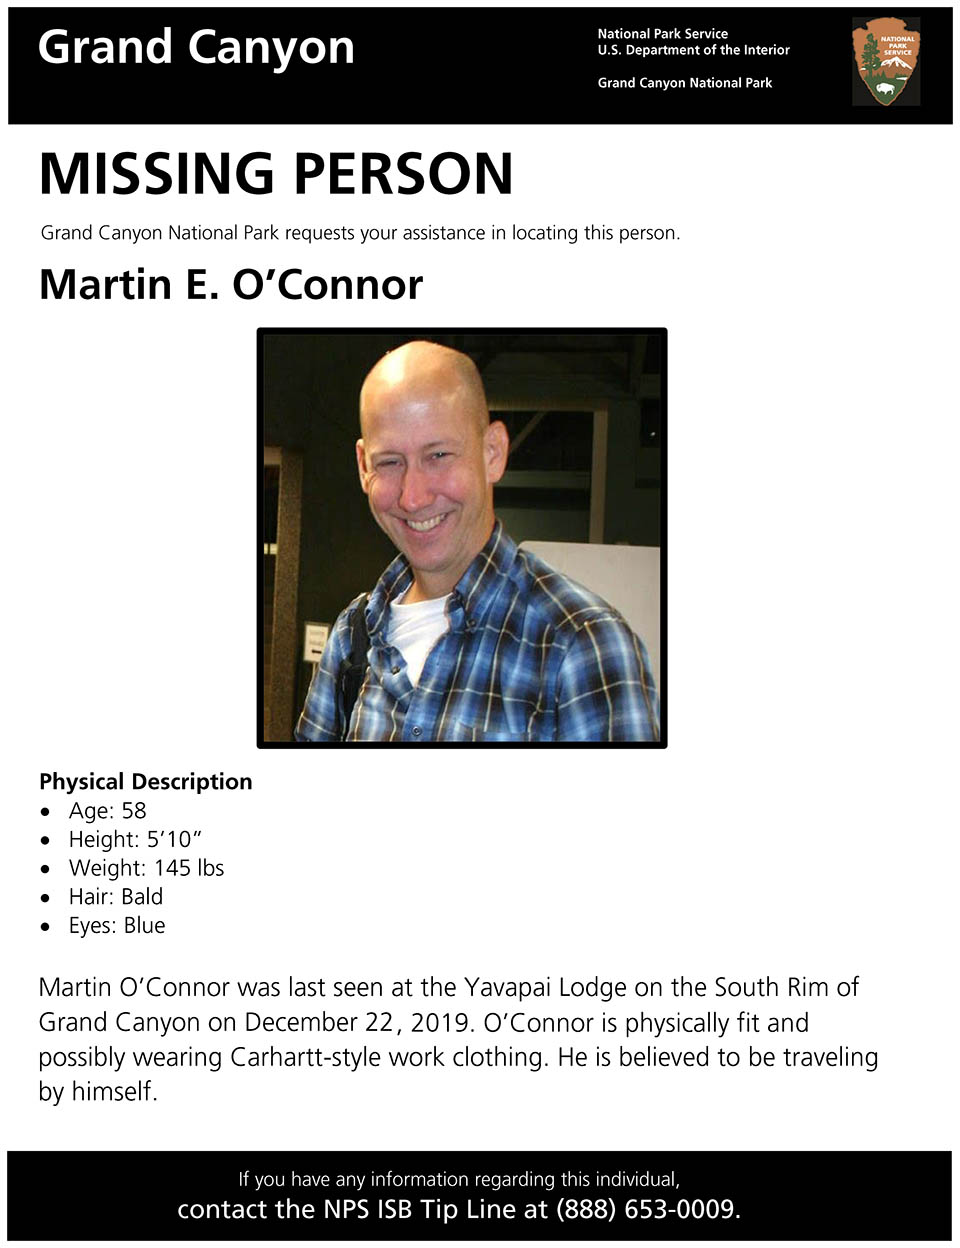 Missing person for Martin E. O'Connor has photo of a smiling, middle aged man with a bald head. blue eyes, and wearing a blue flannel shirt.